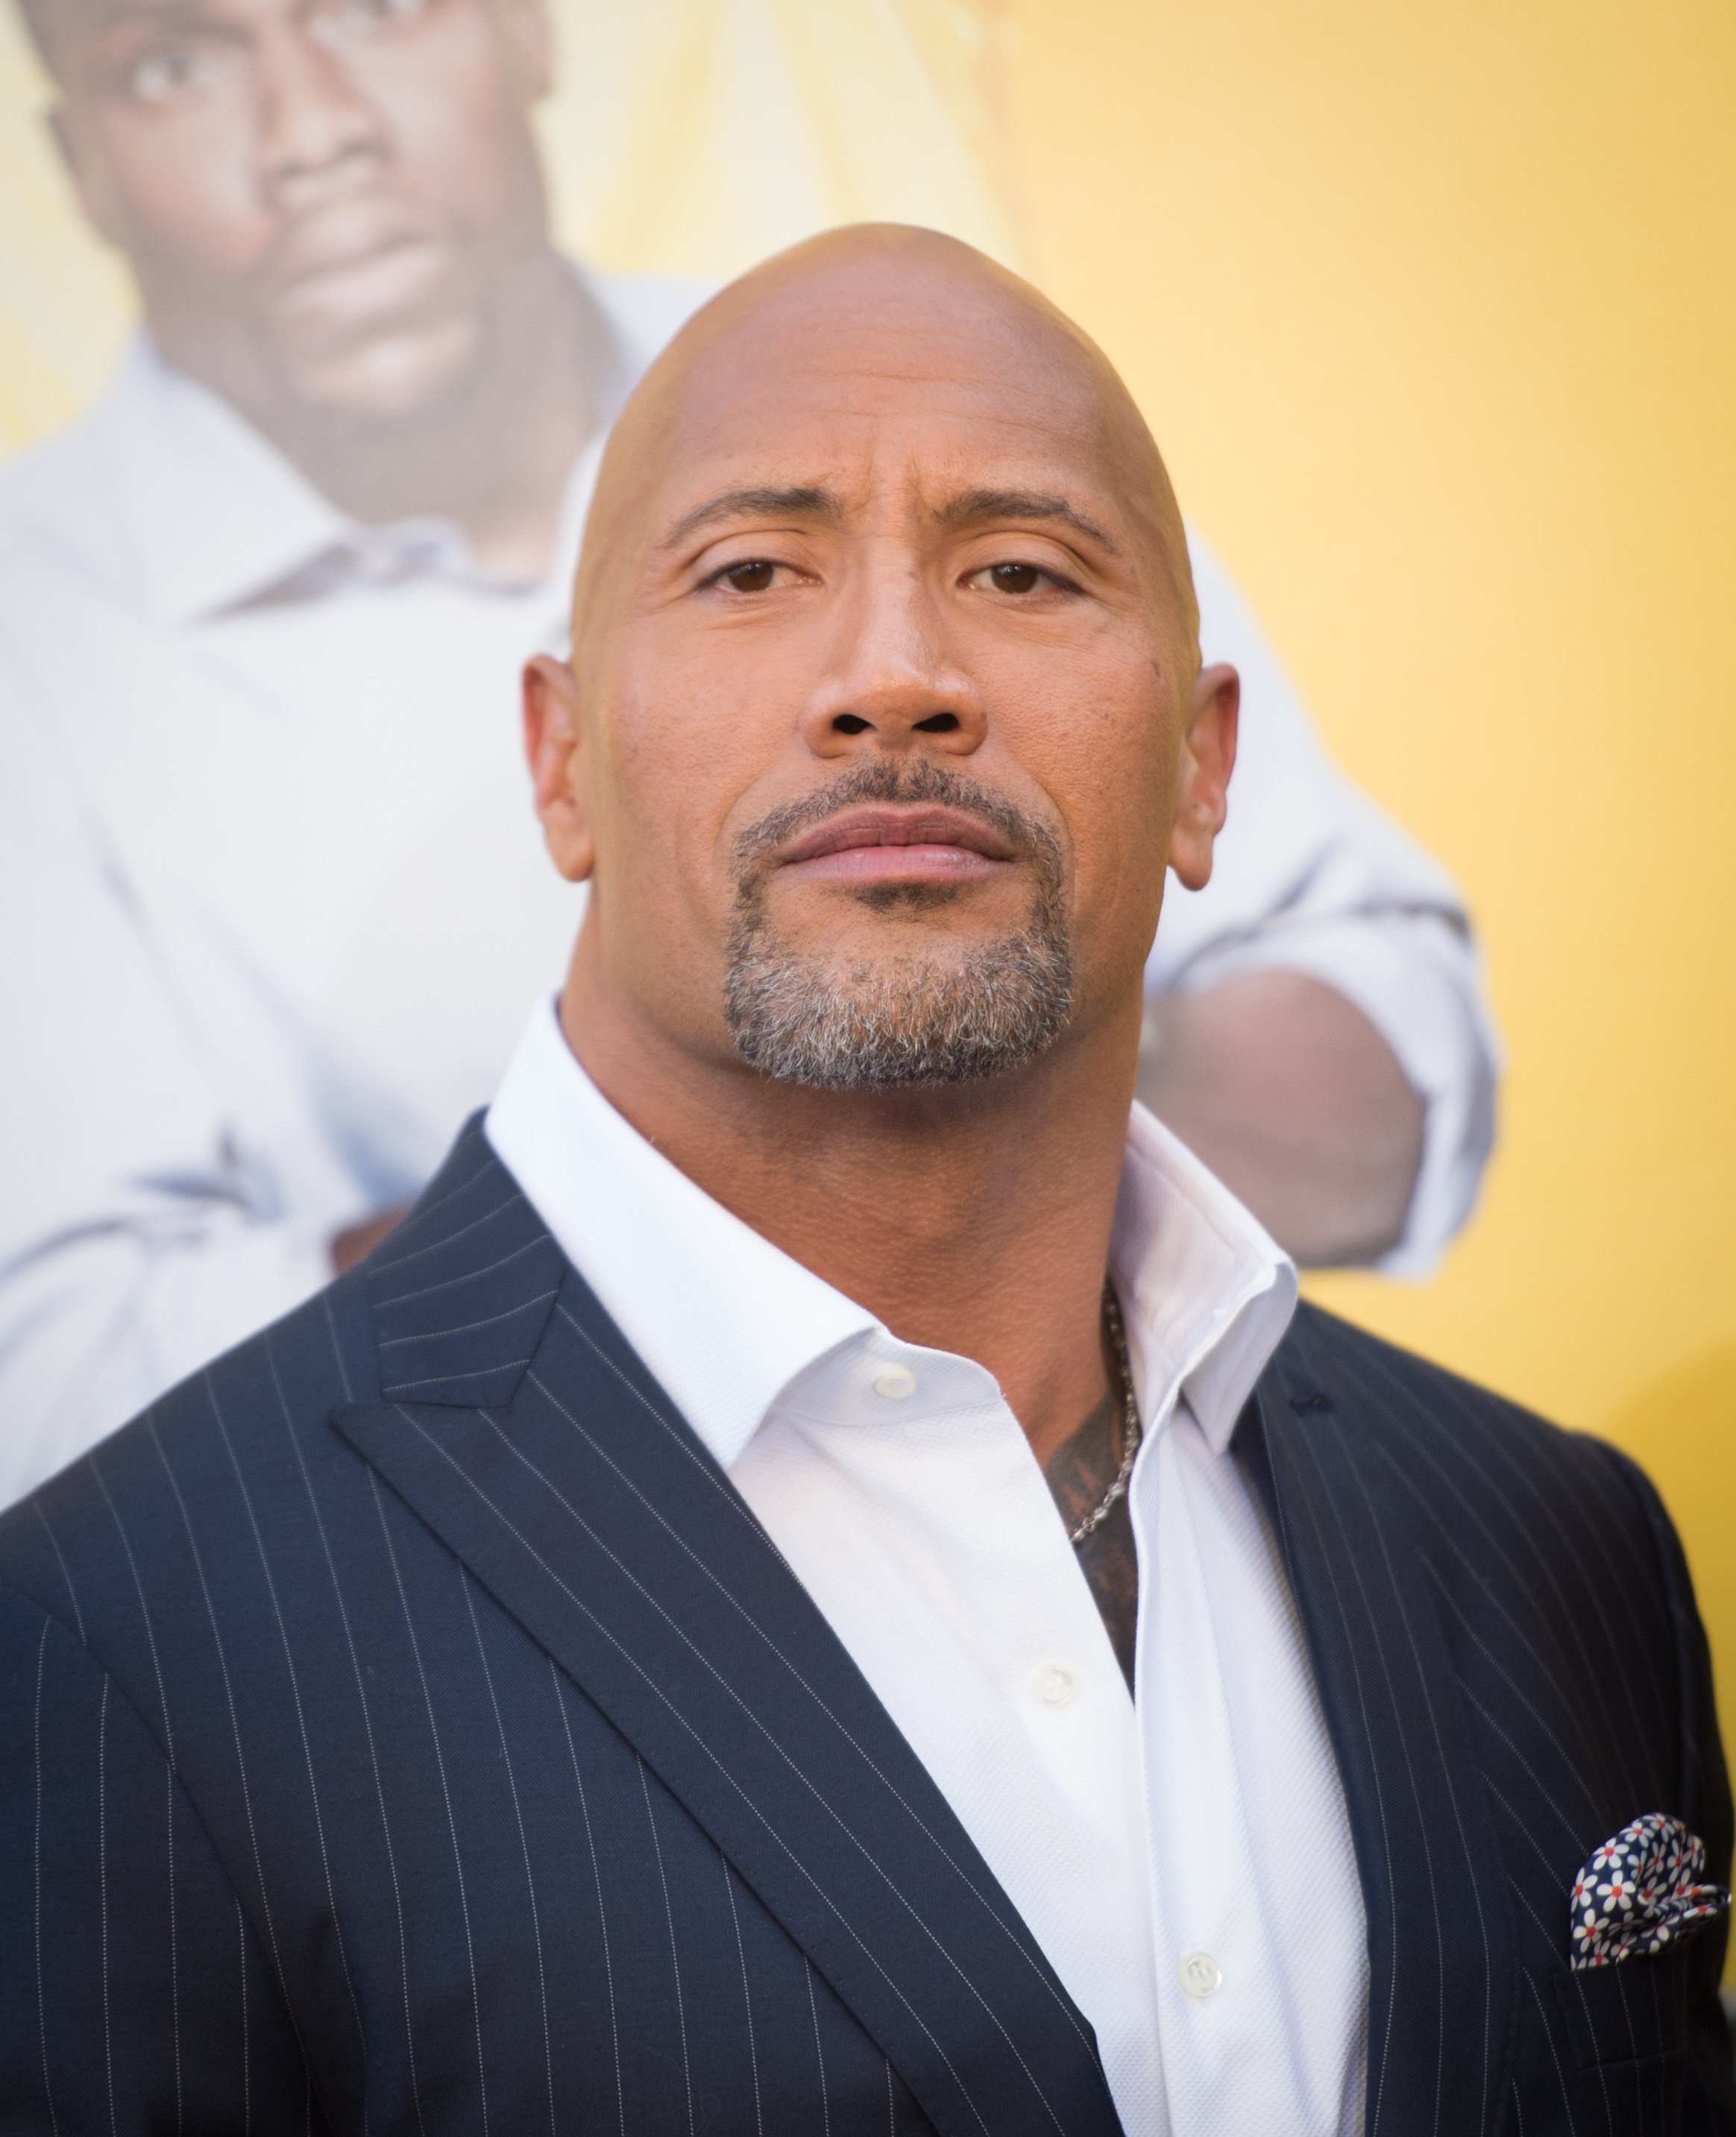 """Dwayne Johnson attends the premiere of """"Central Intelligence"""" on June 10, 2016, in Westwood, California.   Source: Getty Images."""